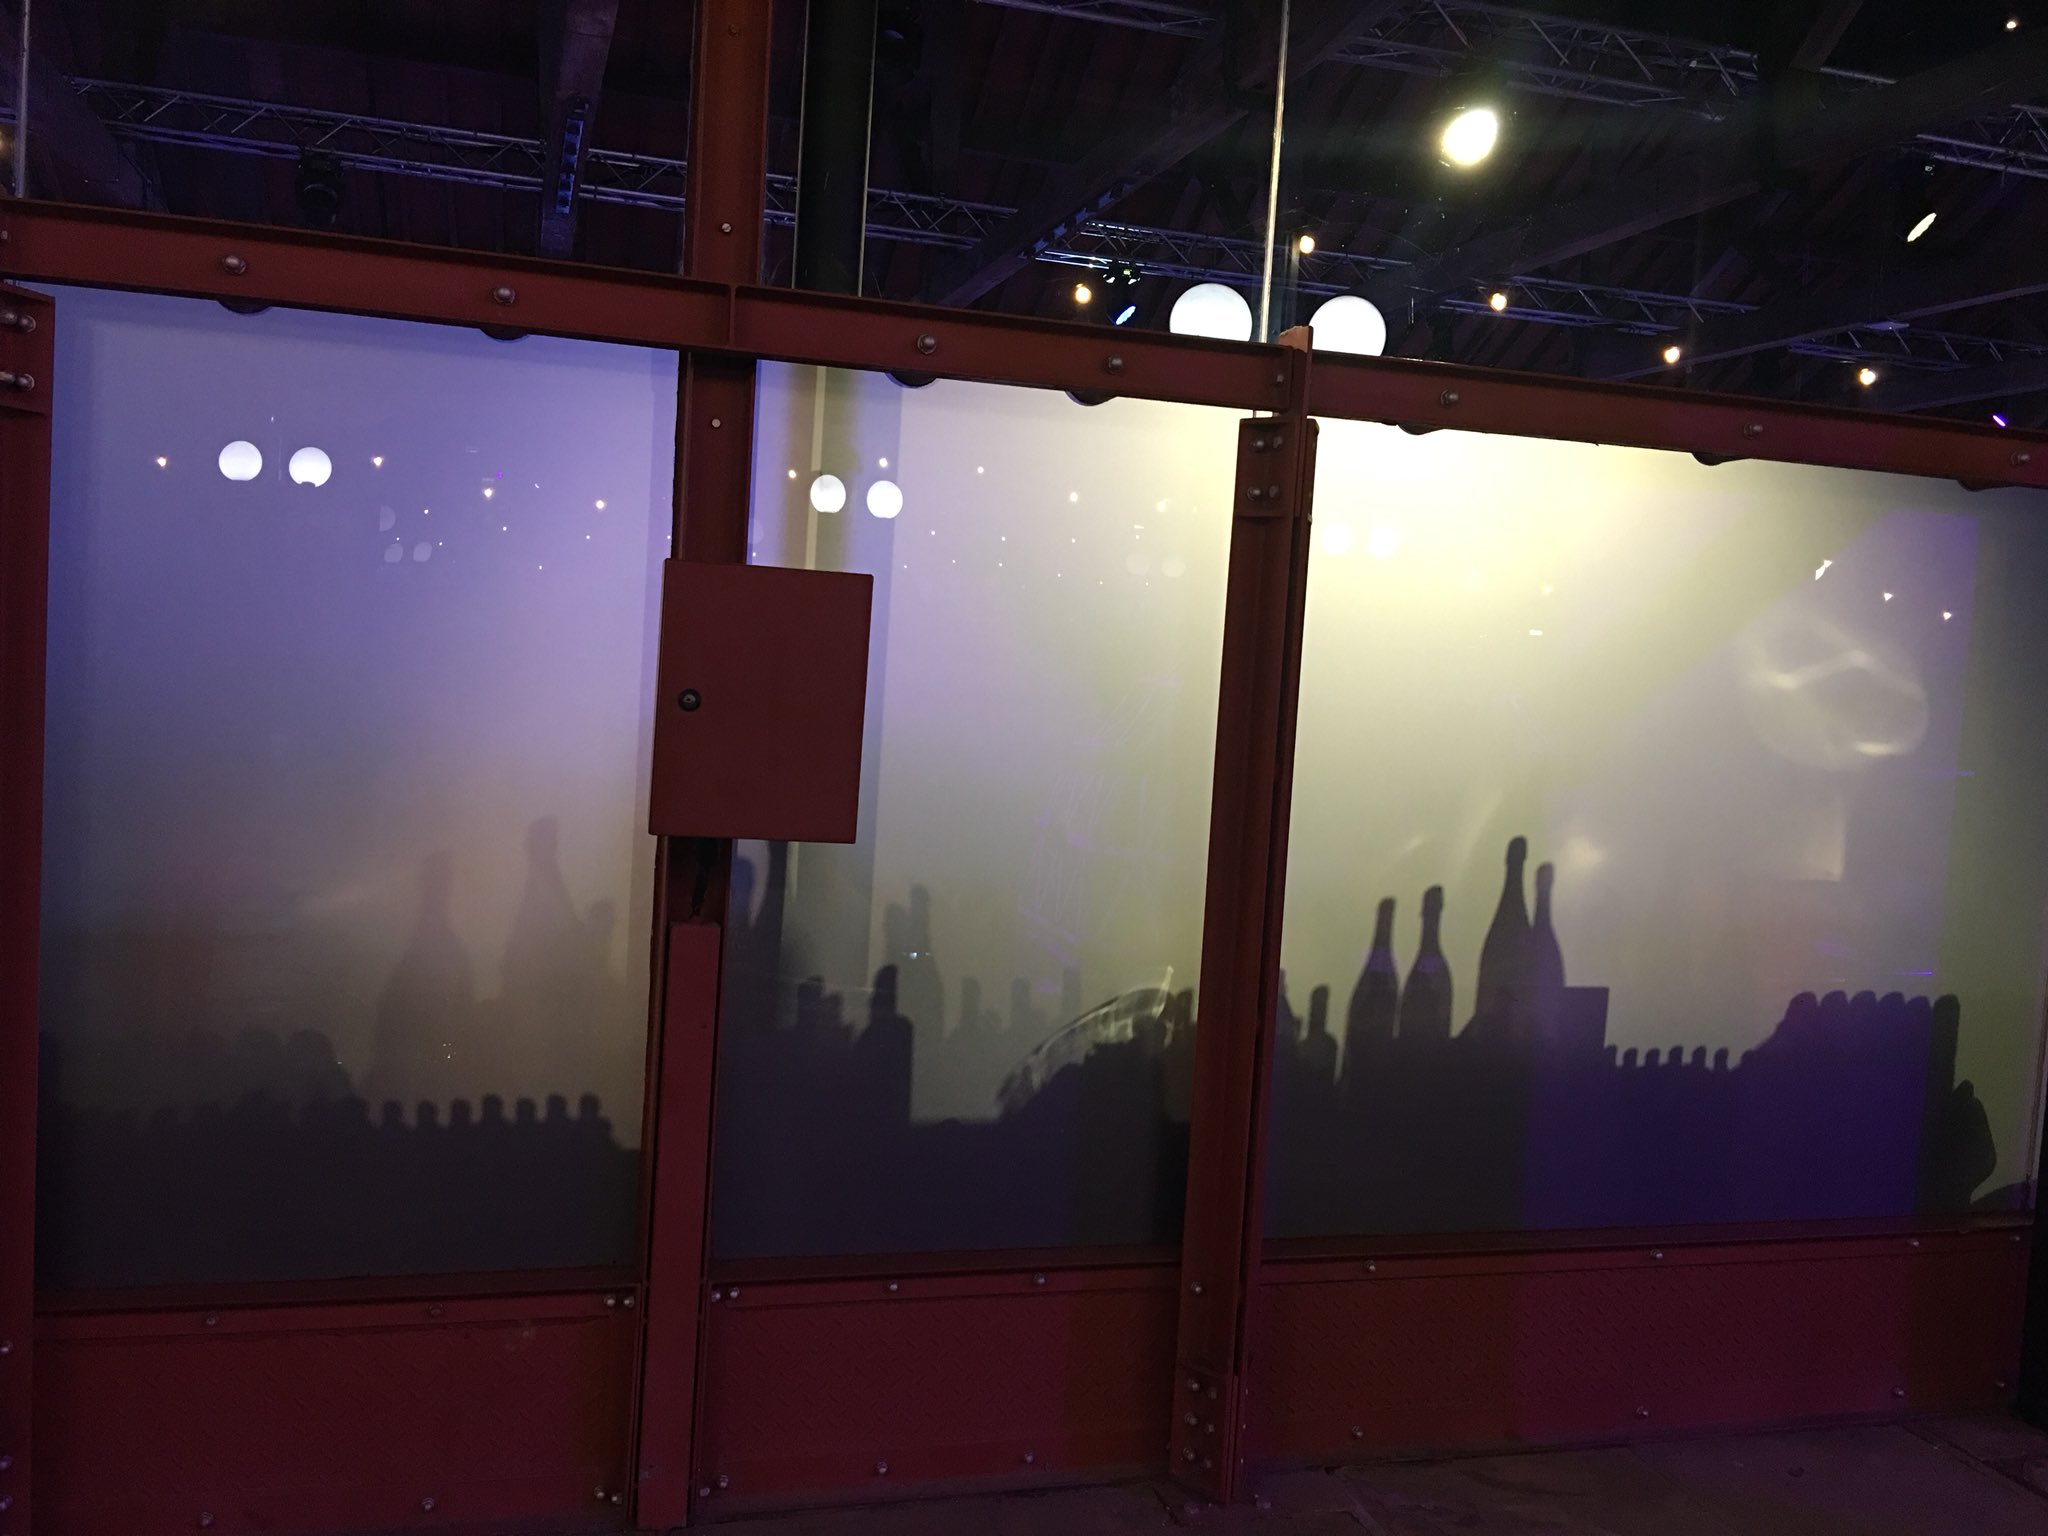 Tuning up for the #BettAwards at London's Tobacco Dock. The bar looks like a silhouette city. https://t.co/D2L4AE26Op